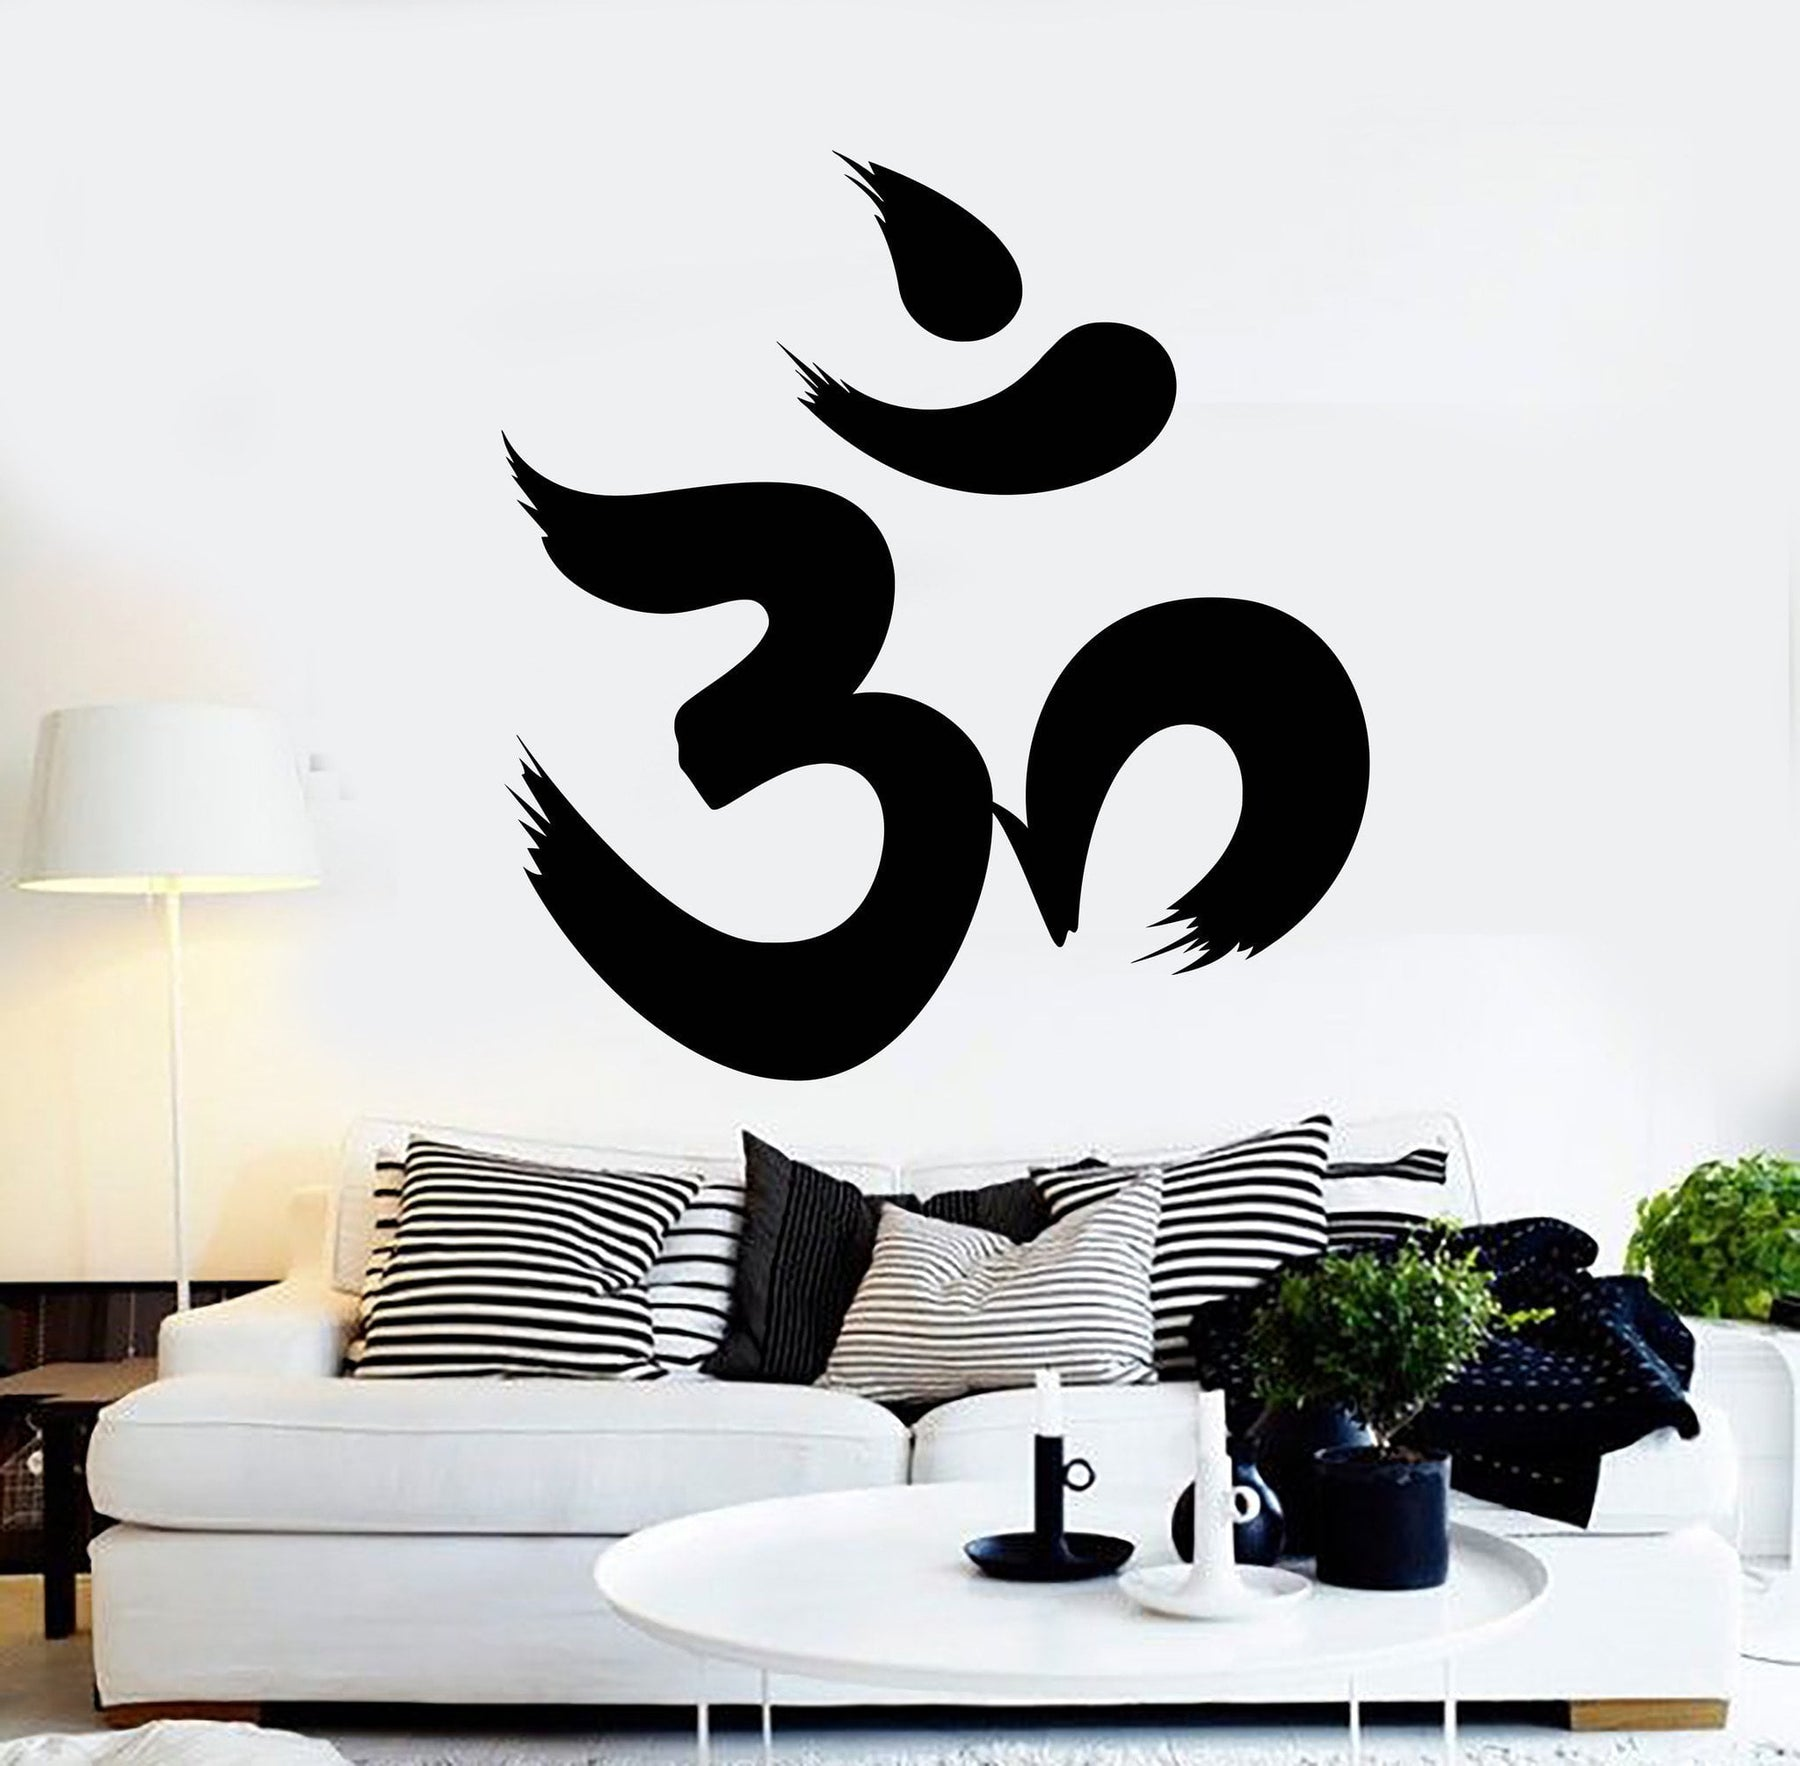 Hindu Vinyl Wall Decal Om Character Sanskrit  Hinduism Stickers Unique Gift (151ig)